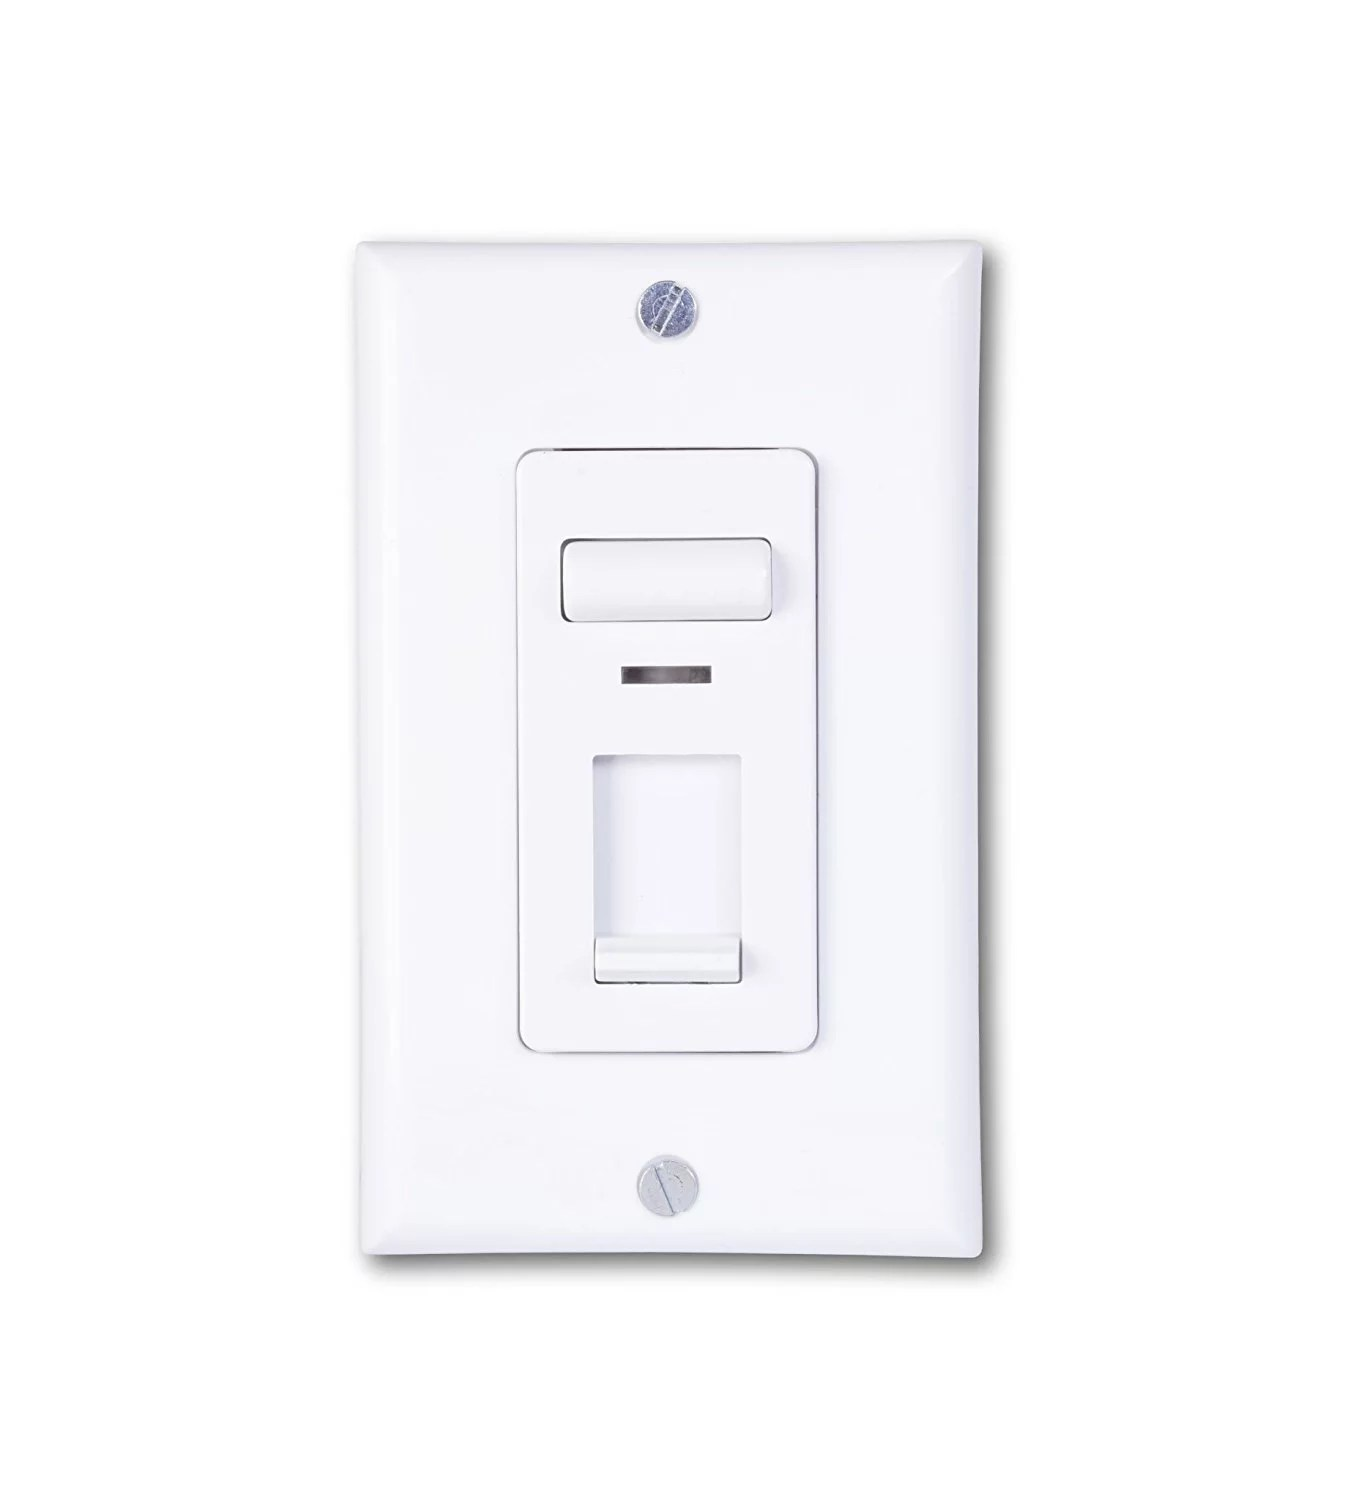 Wall Lights With Dimmer Switch